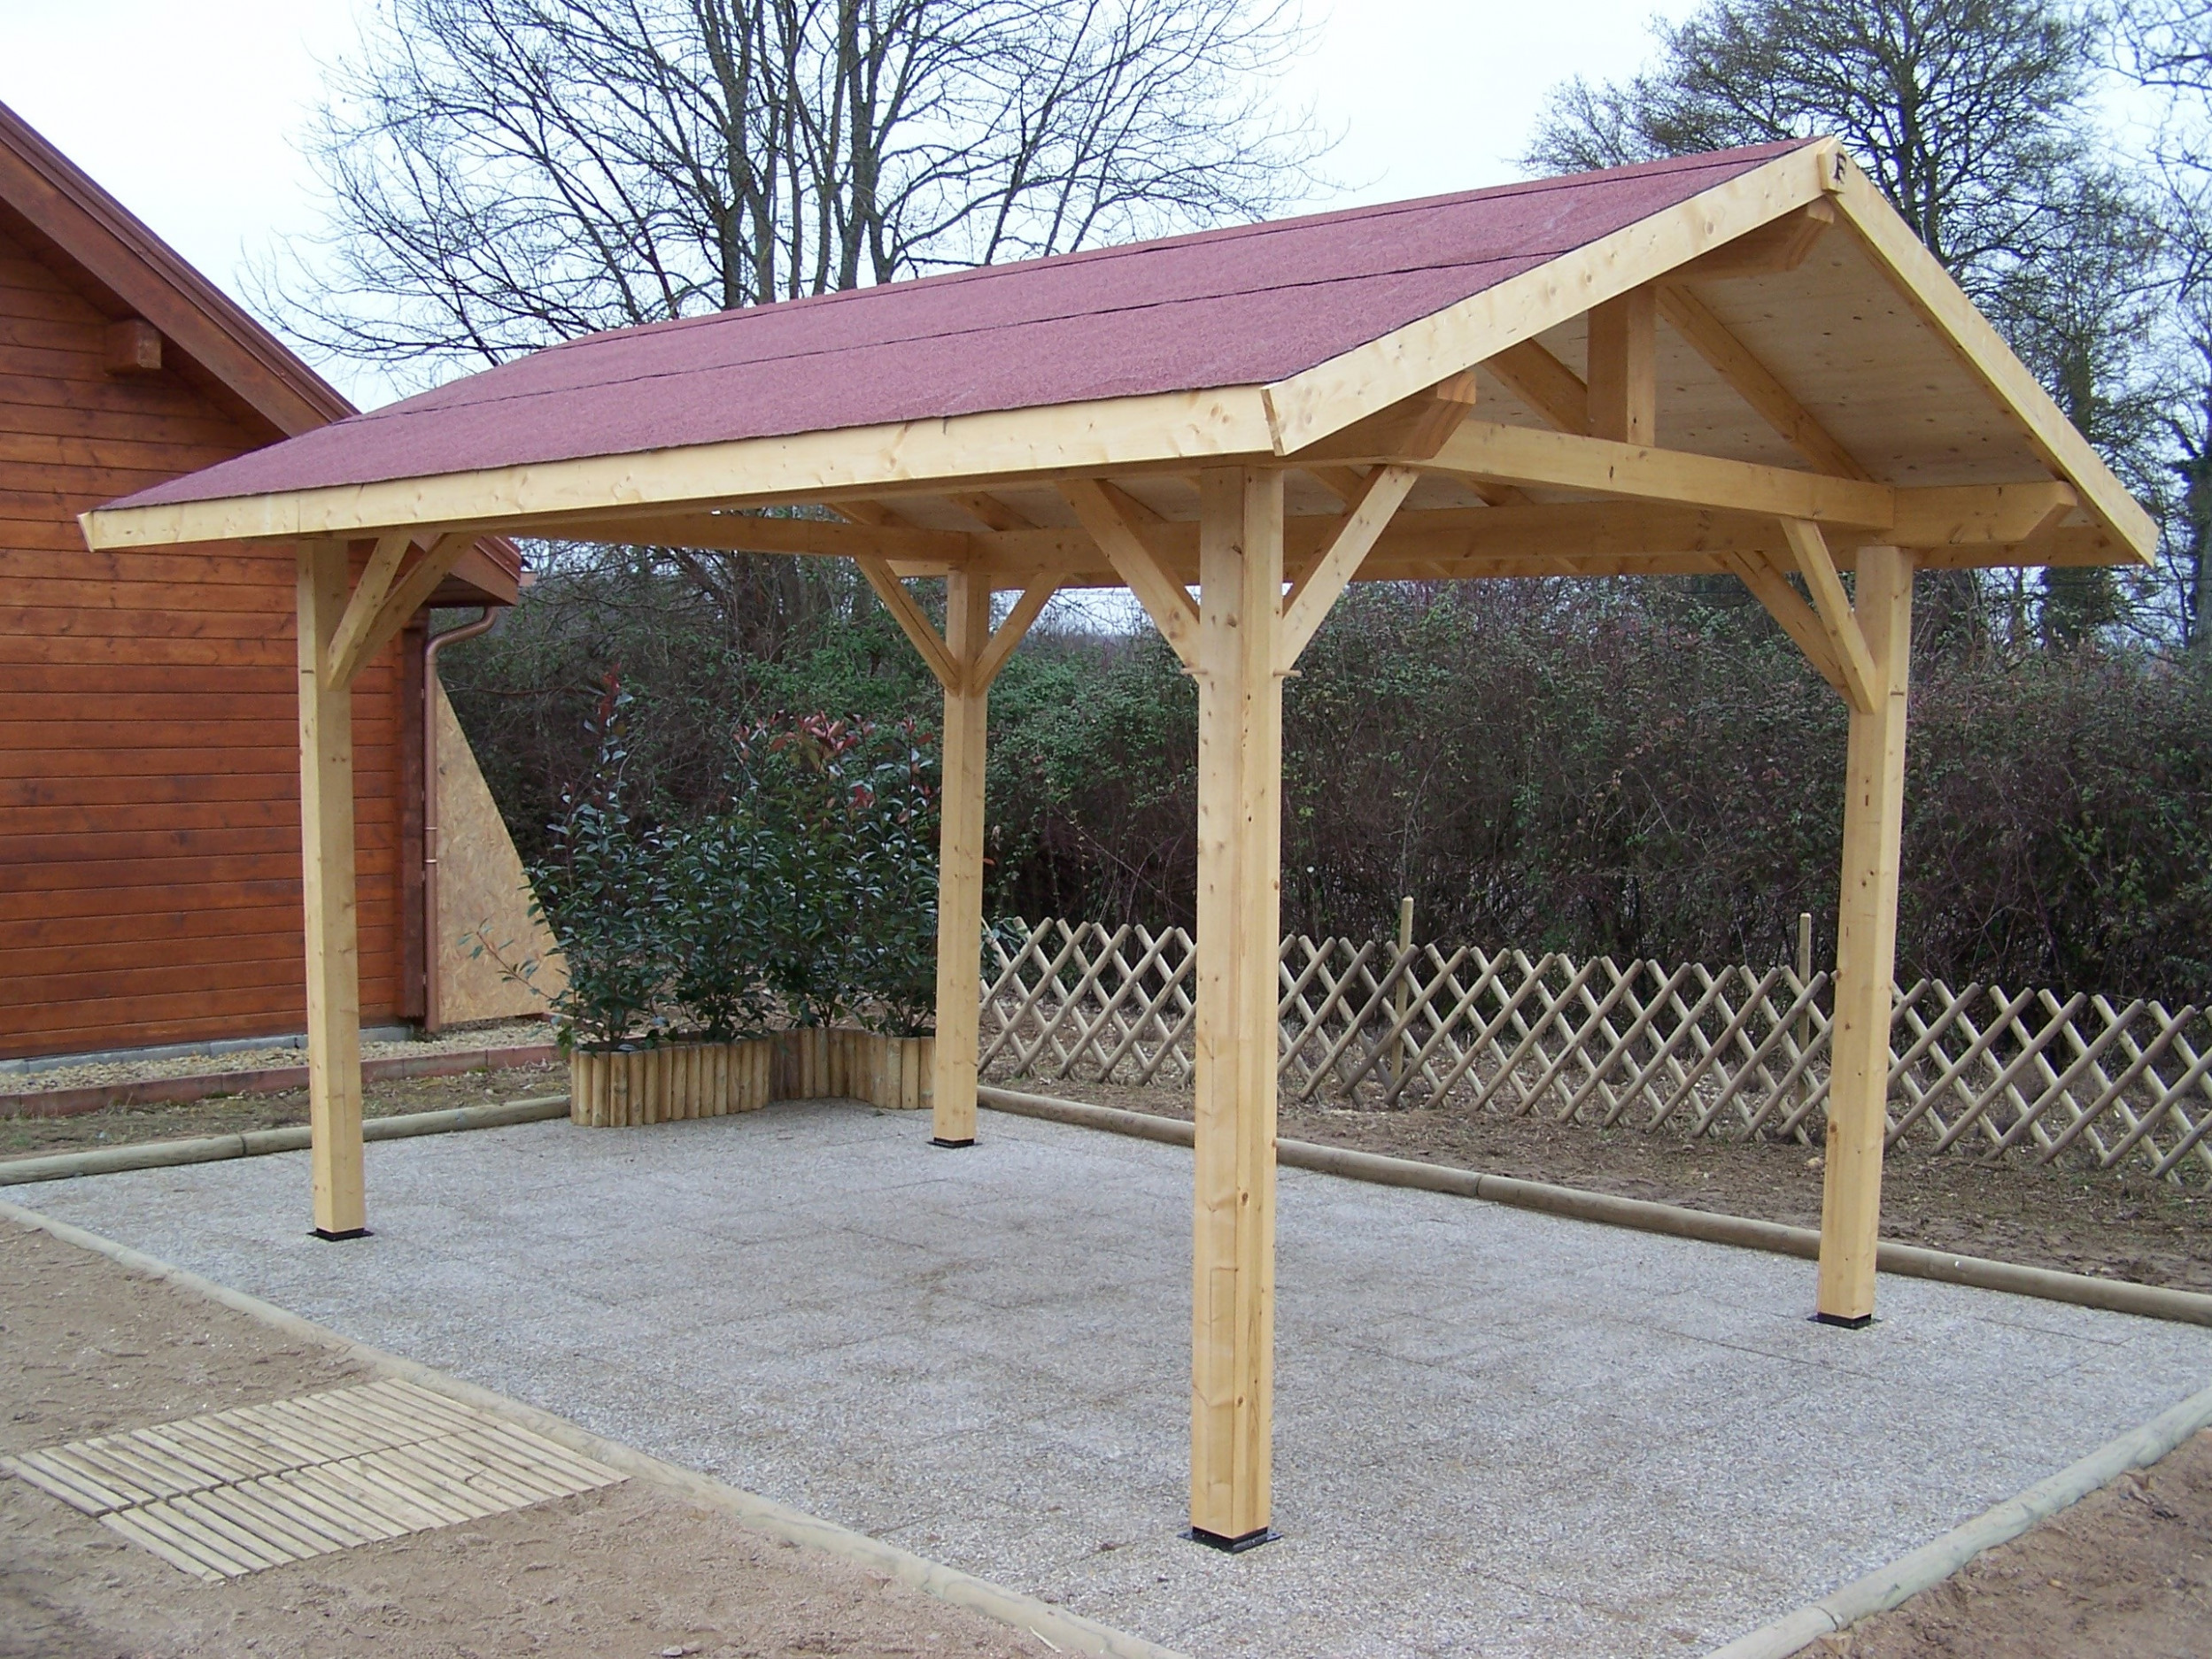 Carports Space Wood Wooden Carport Pics